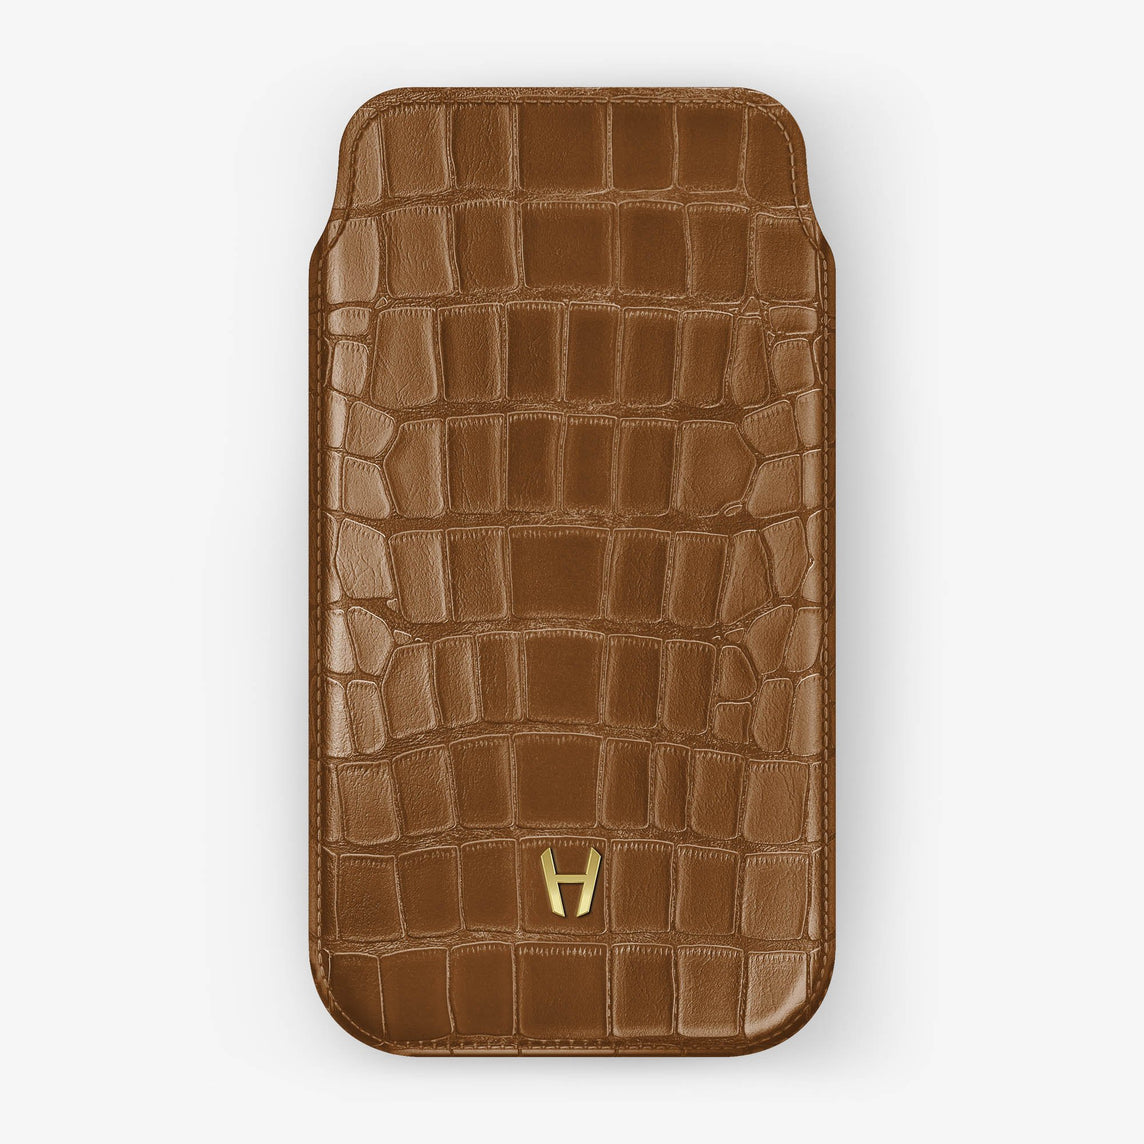 Alligator [iPhone Sleeve Case] [model:iphone-xsmax-case] [colour:cognac] [finishing:yellow-gold]